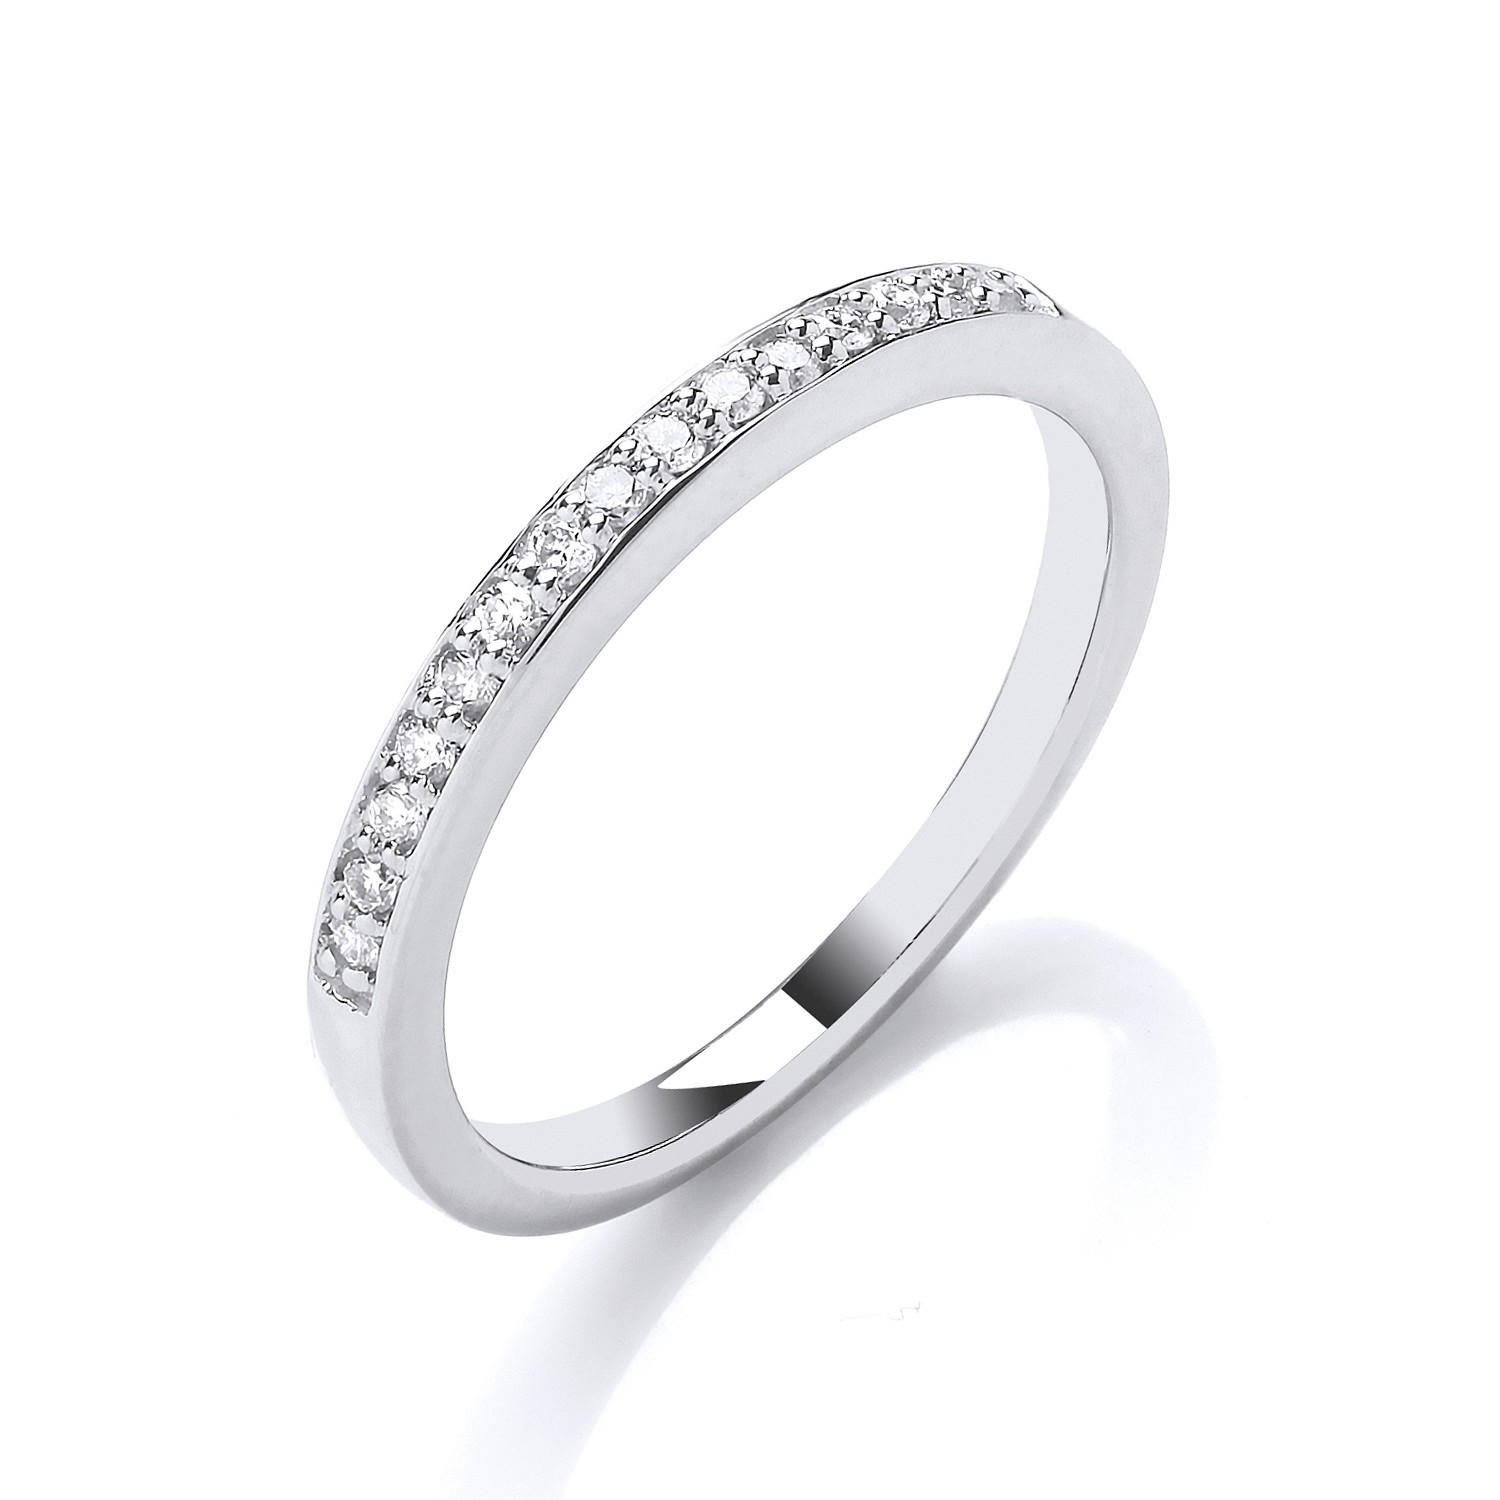 18ct White Gold 0.14ct Half Eternity Ring